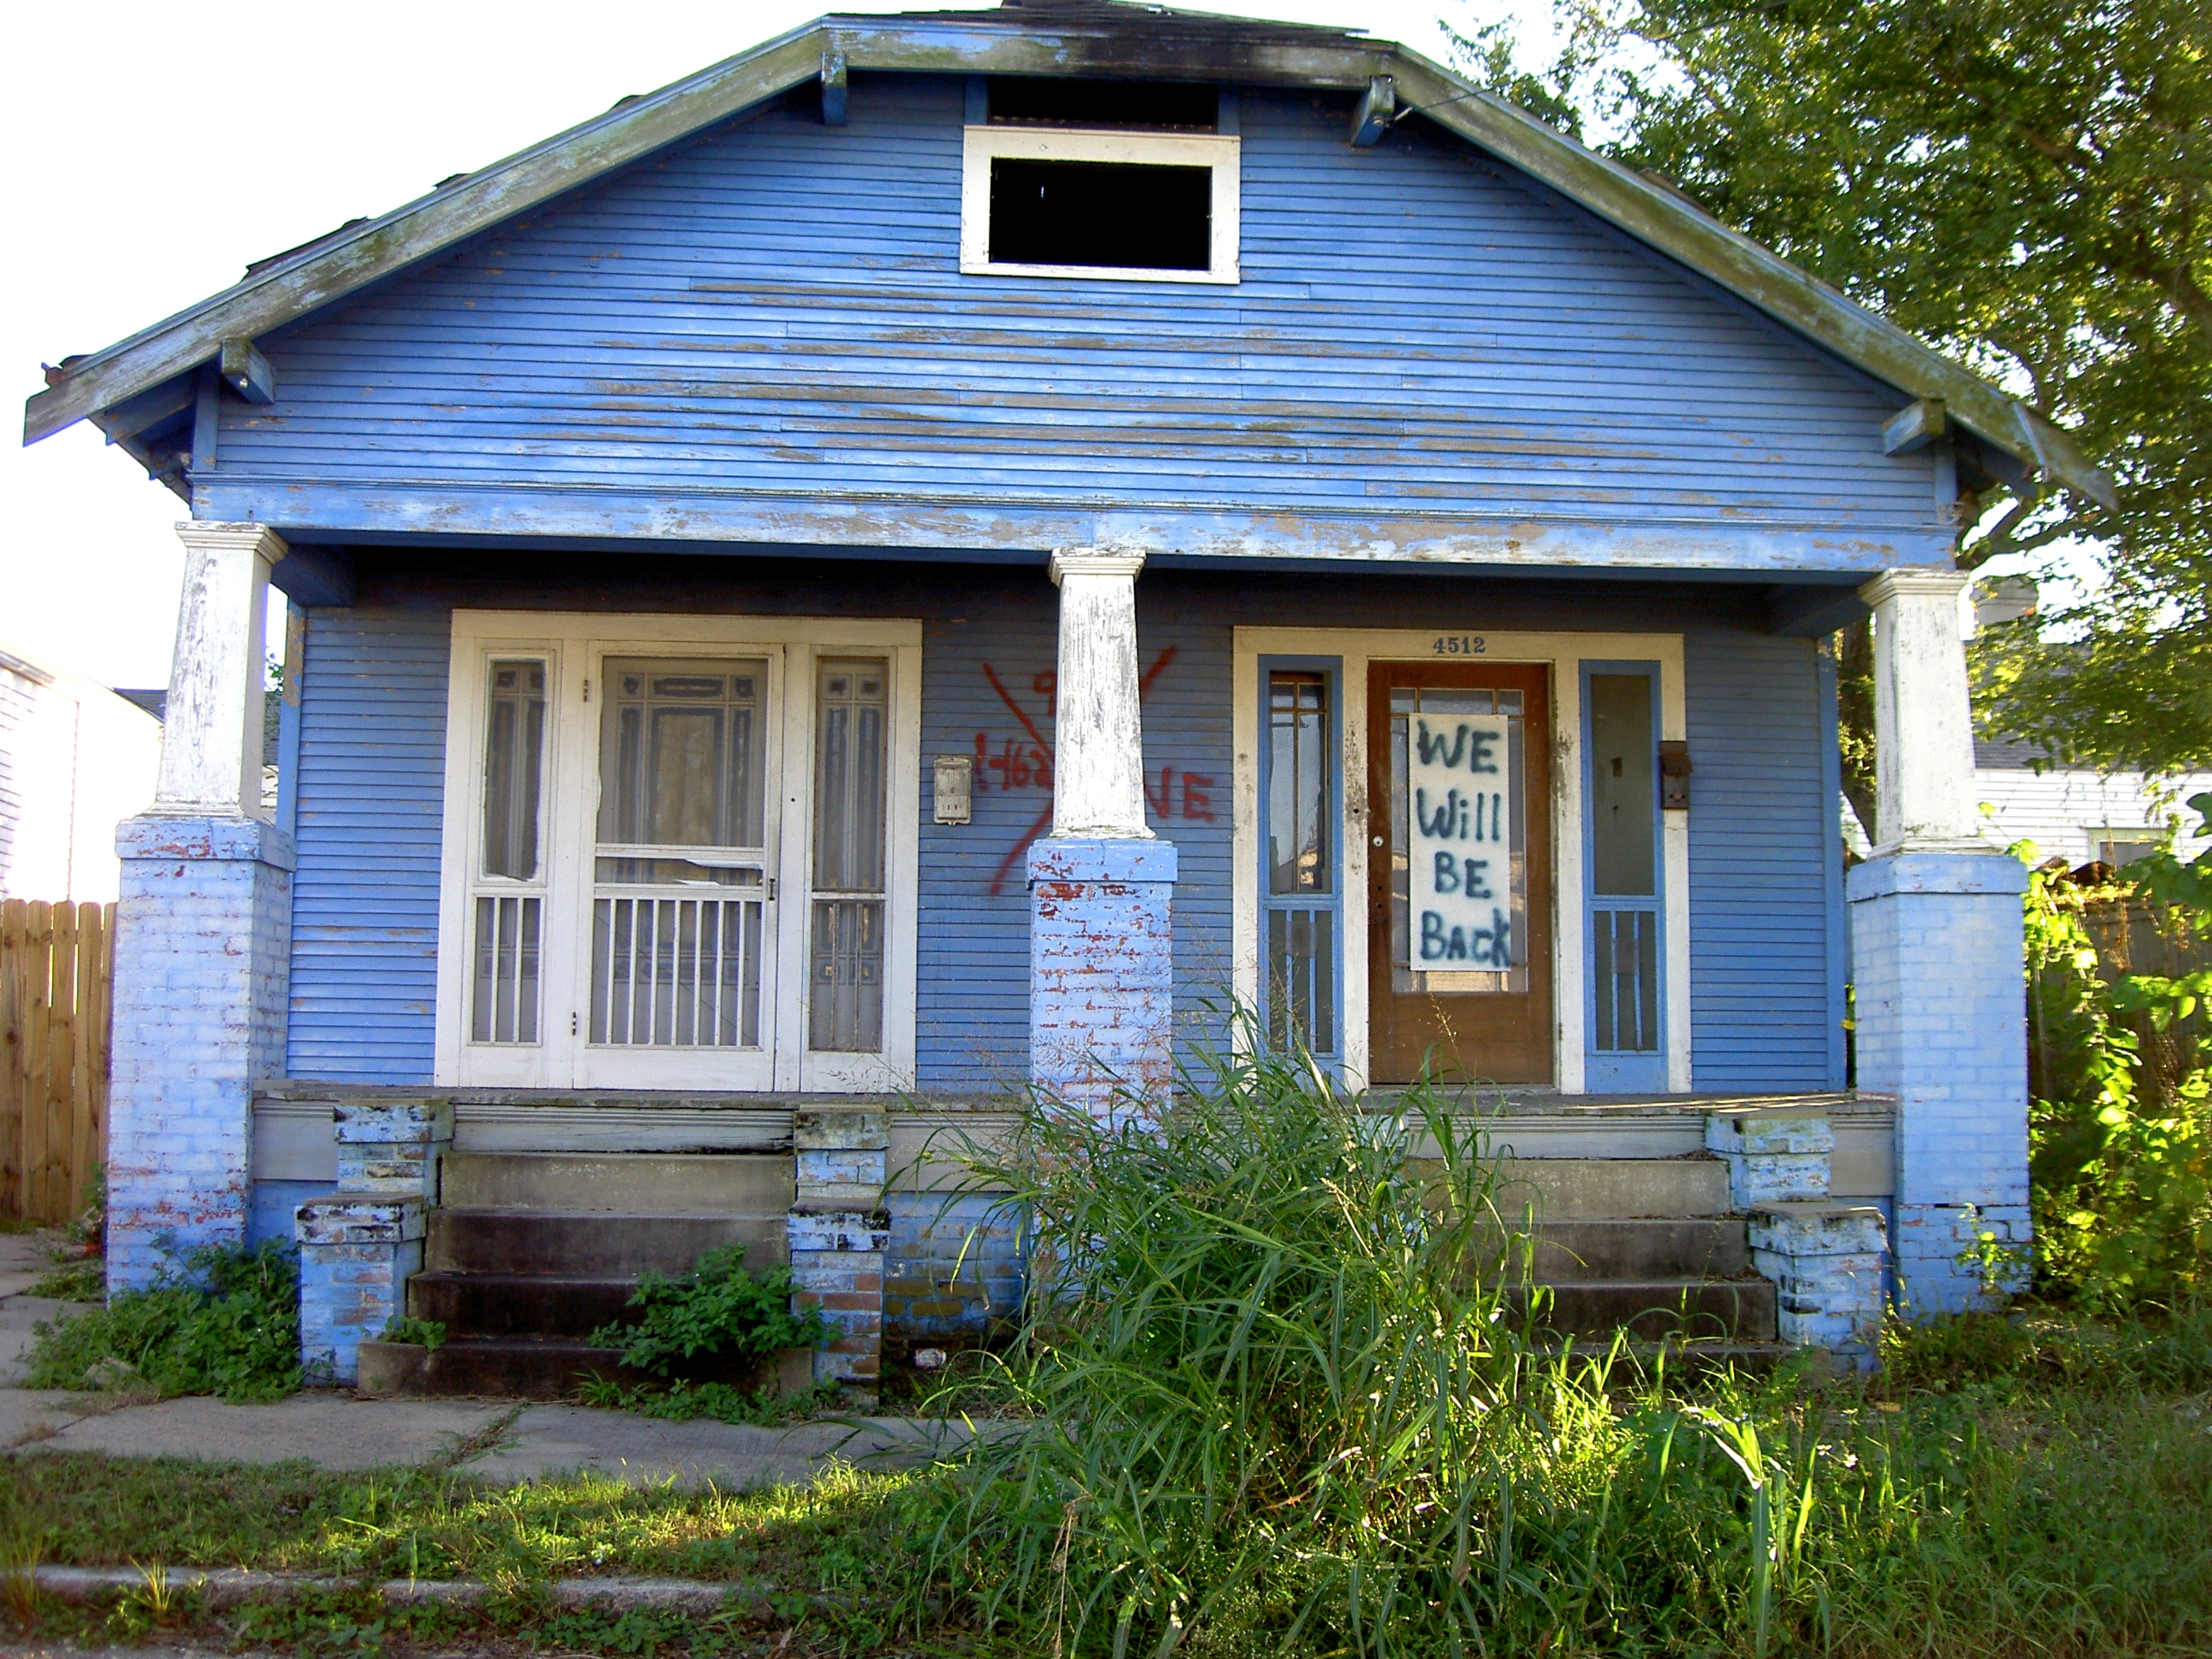 Fileblue House N Robertson St 4500 Blk New Orleans Lajpg